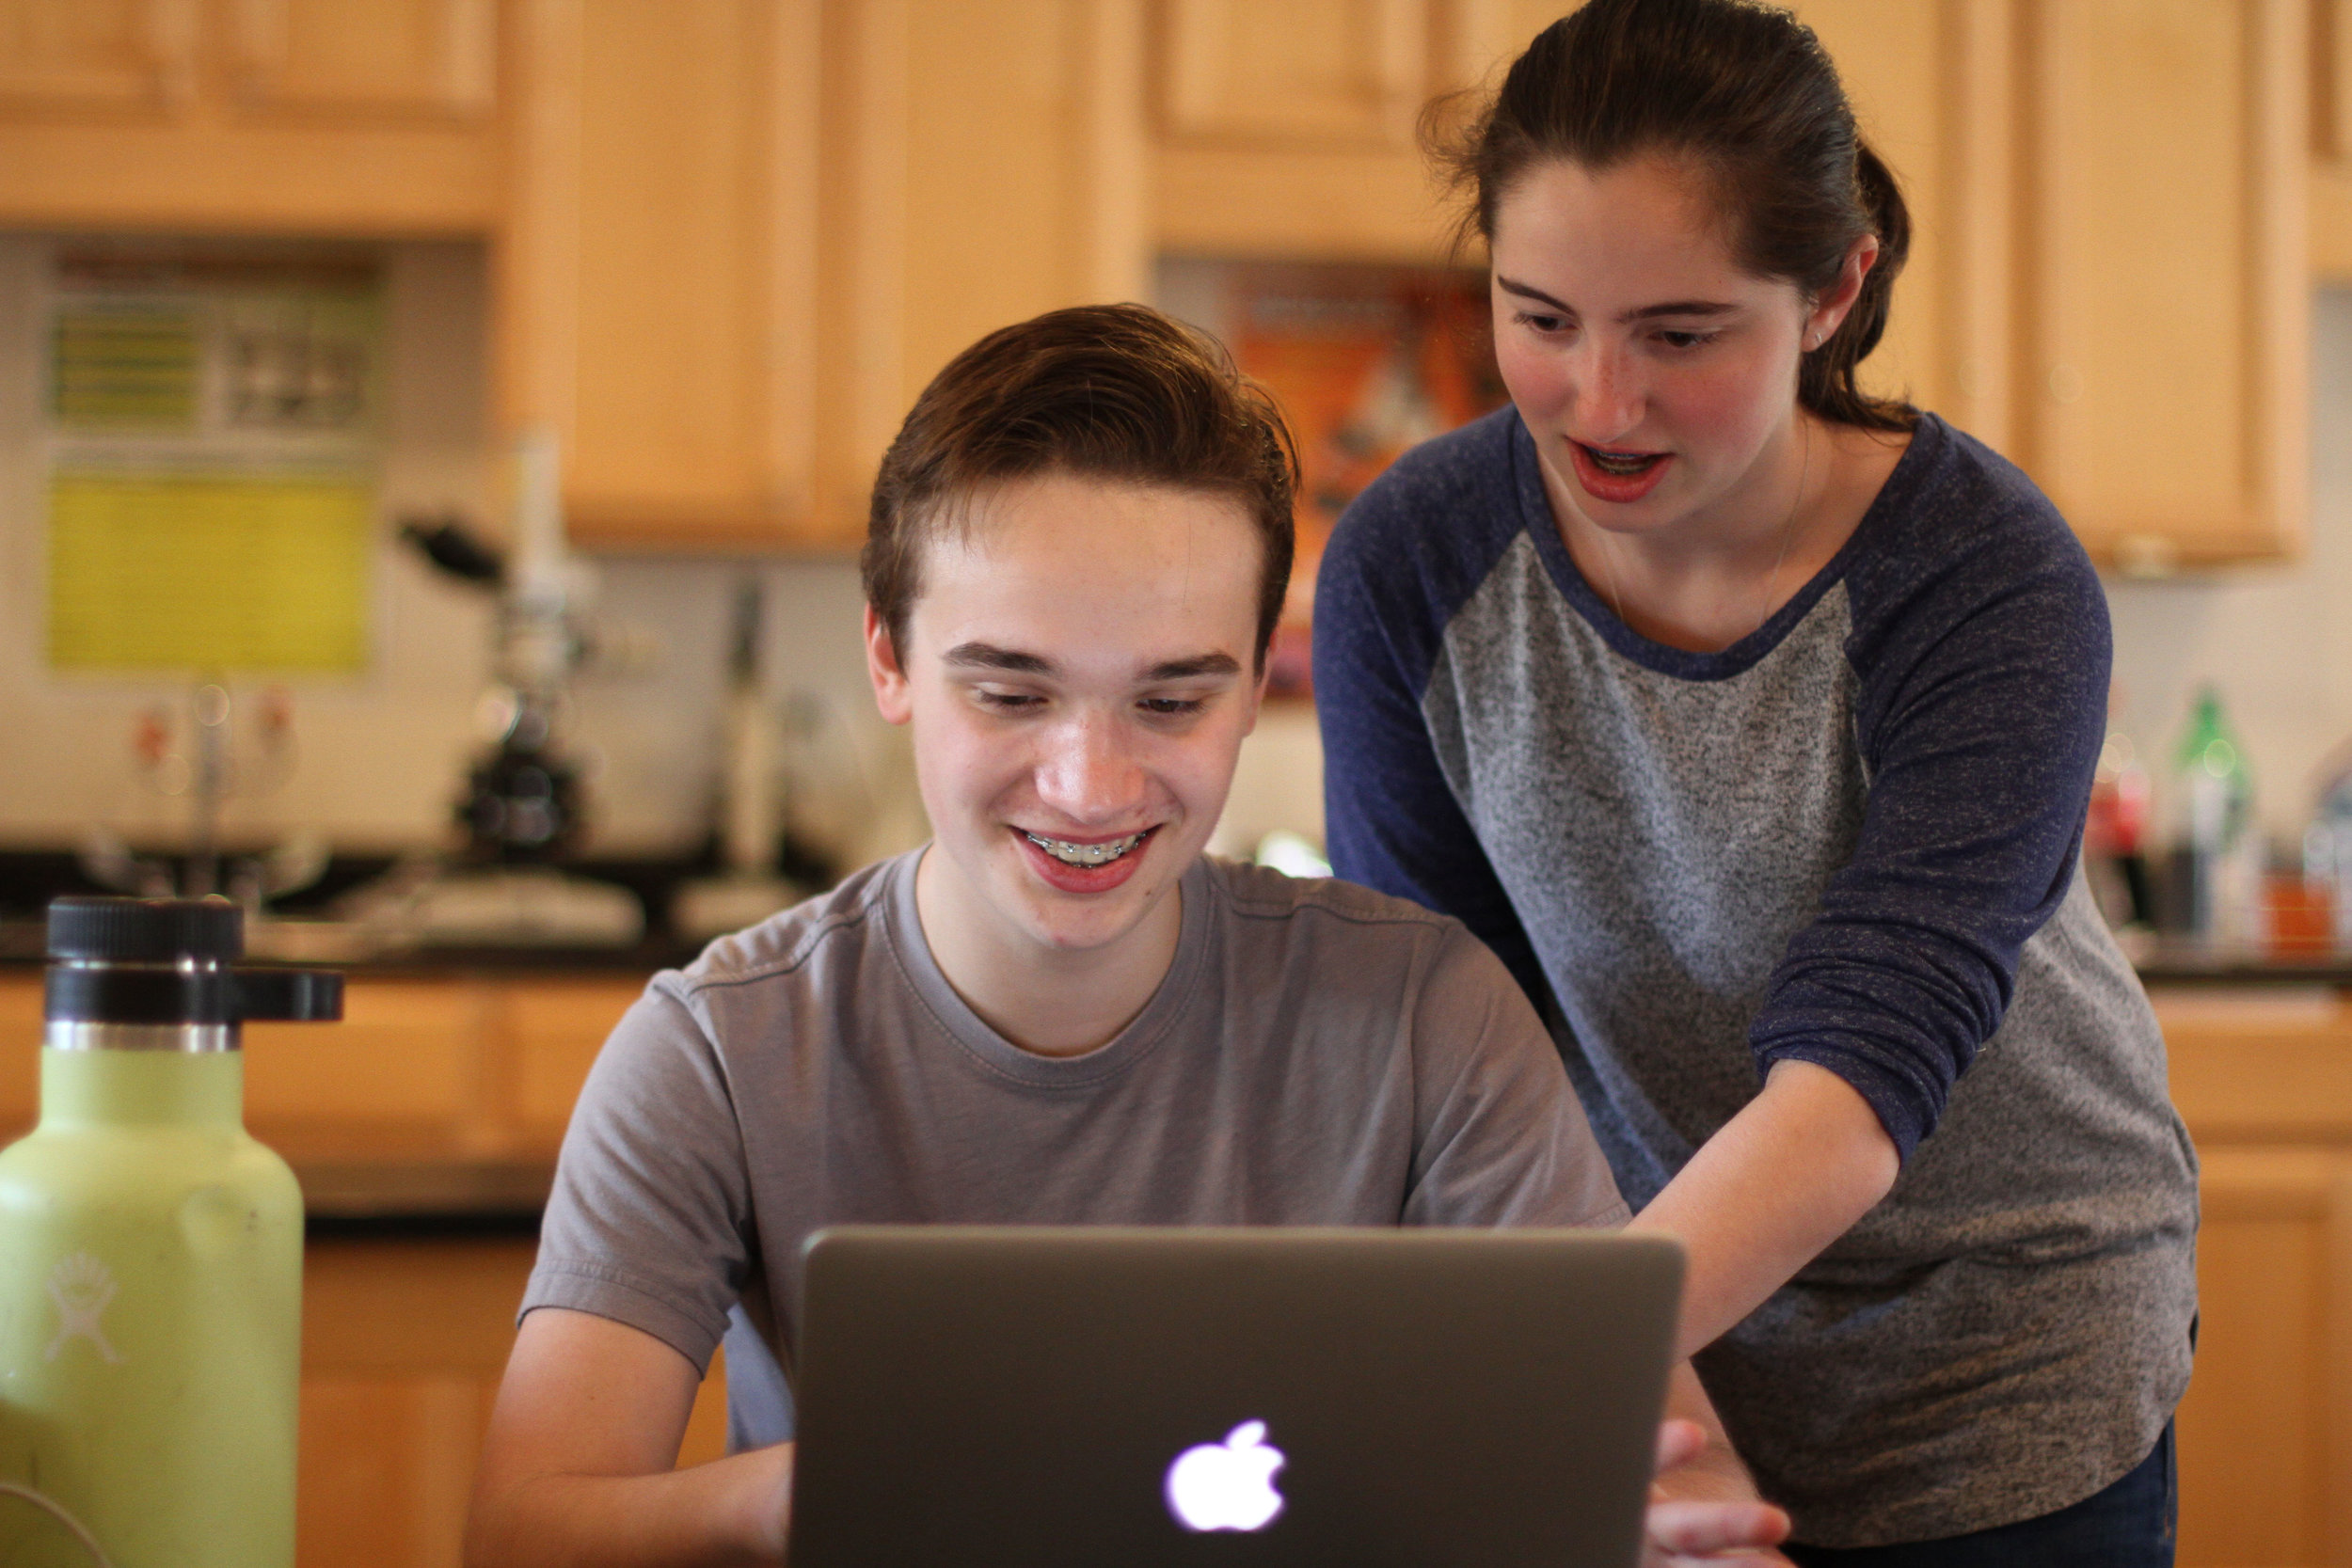 montessori schools focus heavily on student-driven, independent learning, which includes giving students access to a broad selection of digital options. Photo courtesy of The Montessori School of Raleigh